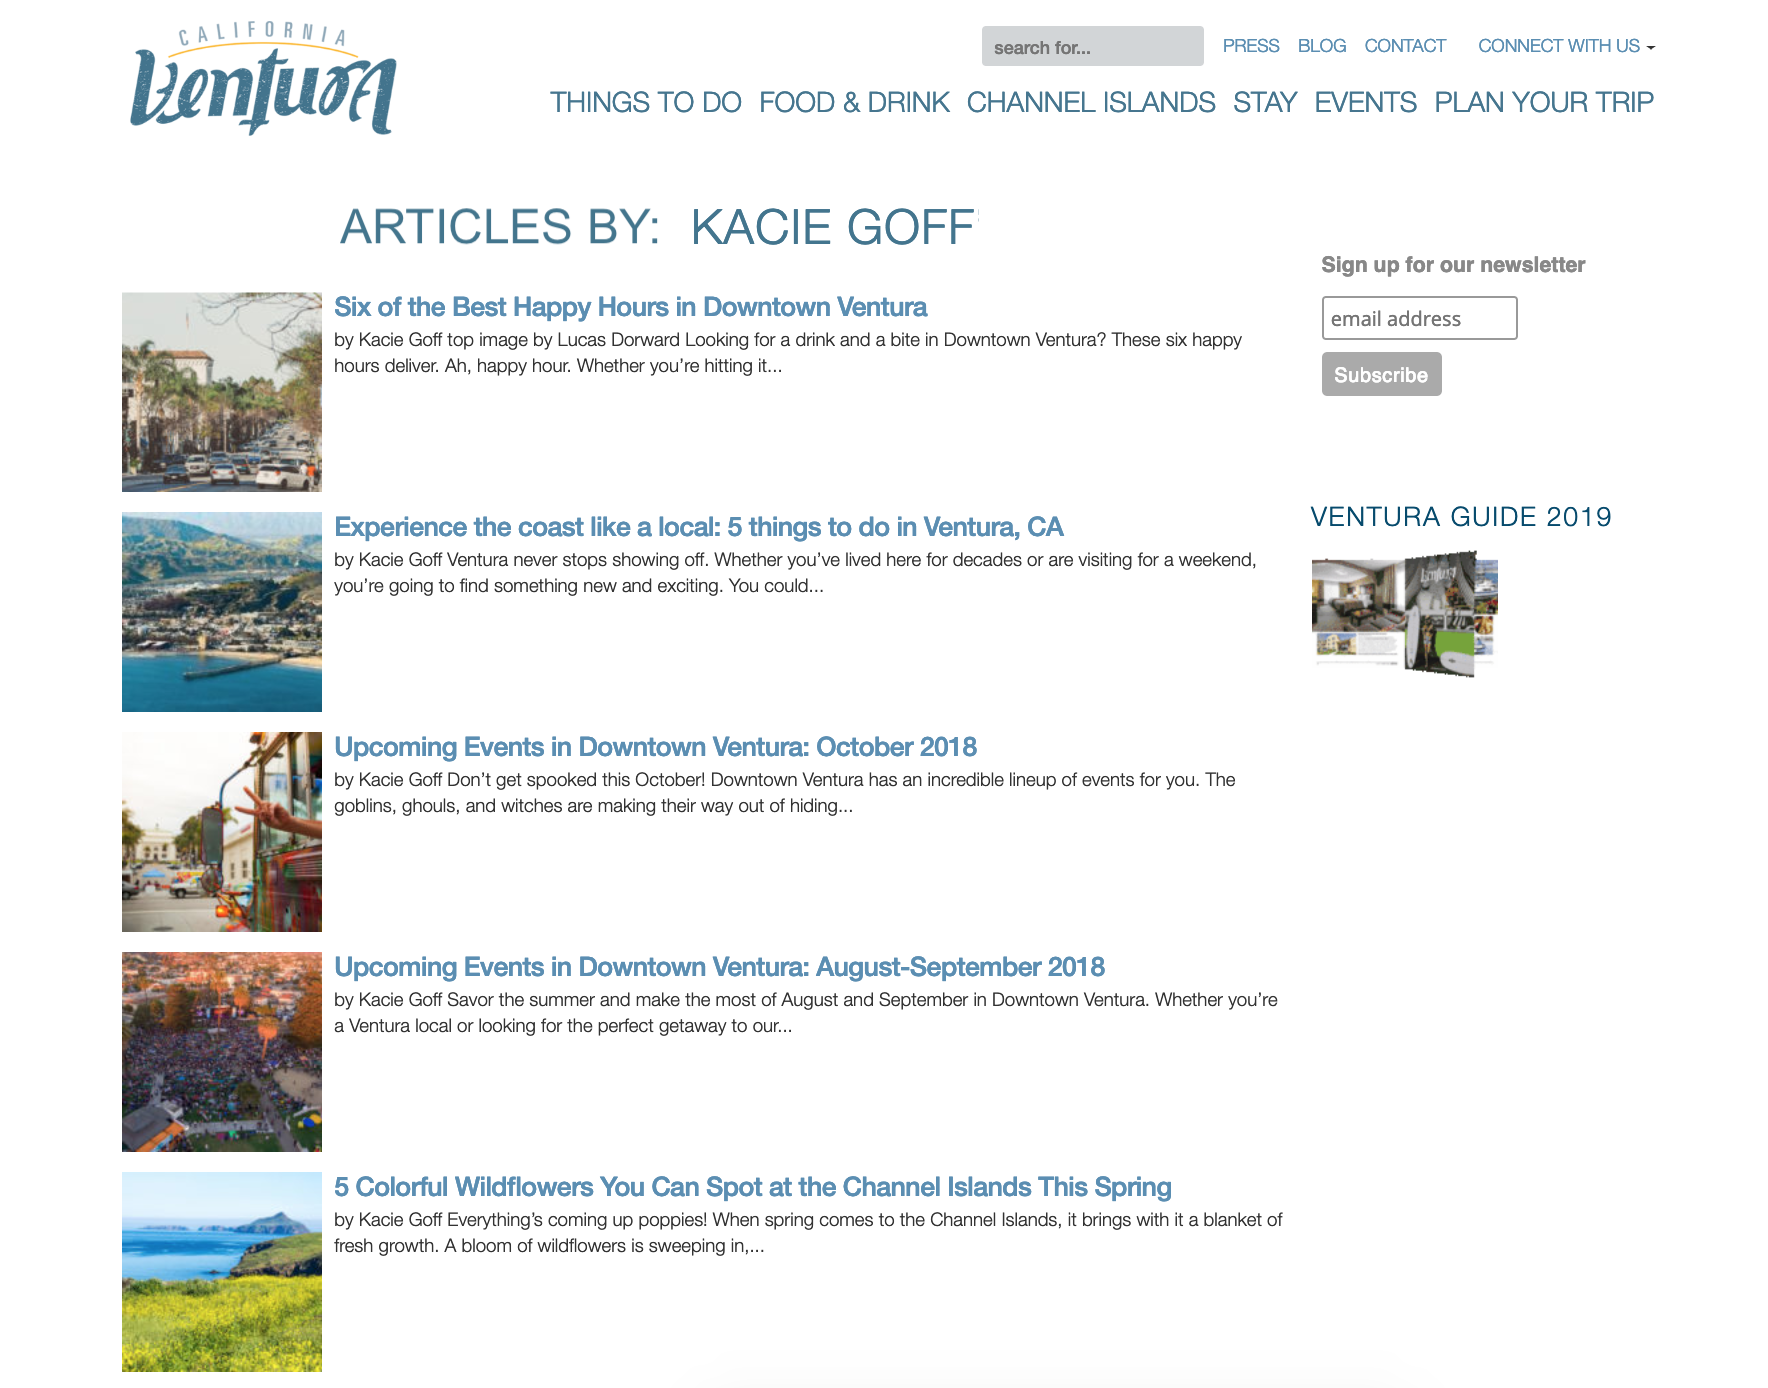 ARTICLES:VISIT VENTURA - I love my town. It's been a true pleasure to write content for Visit Ventura to help highlight some of the best parts of our amazing community, like killer happy hours and colorful wildflowers. Read more.